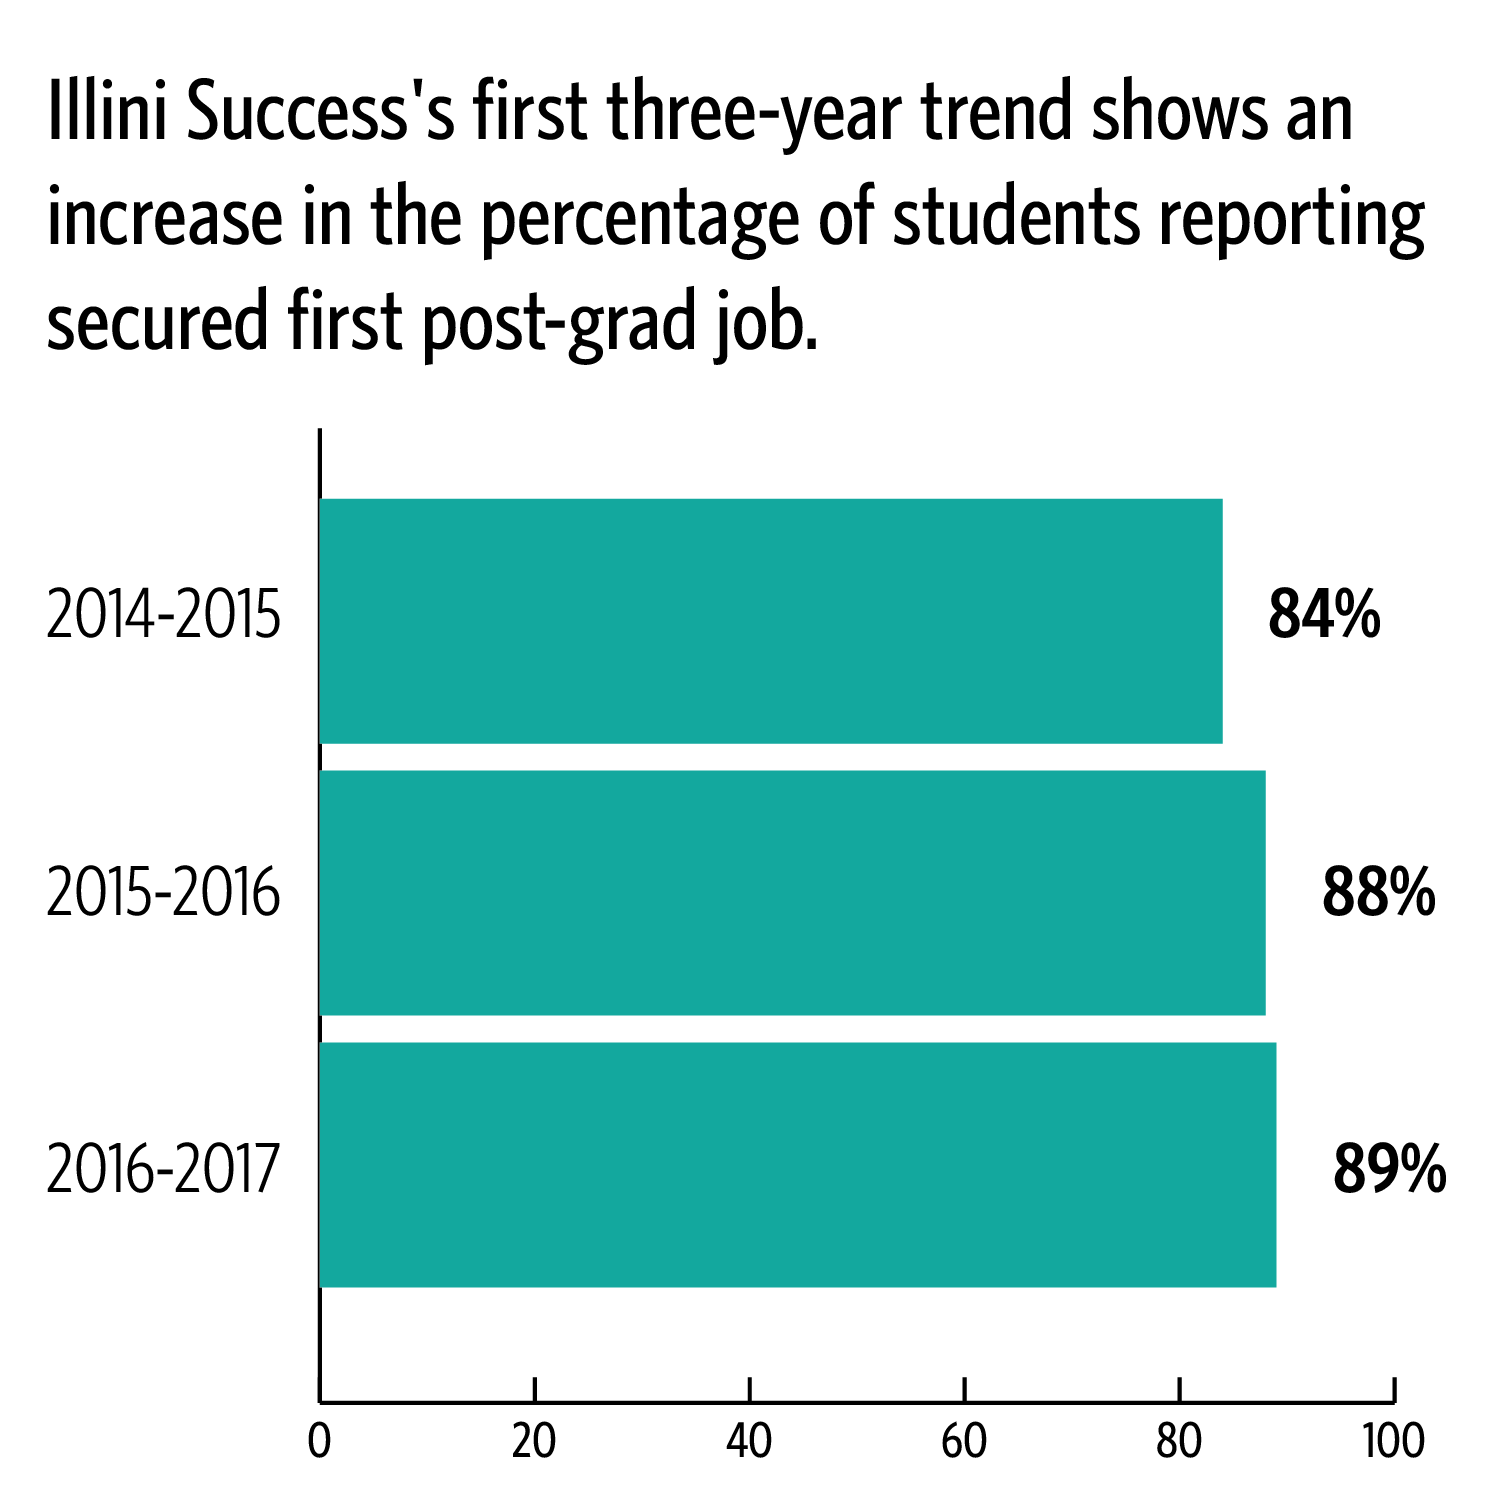 Source: UI Illini Success